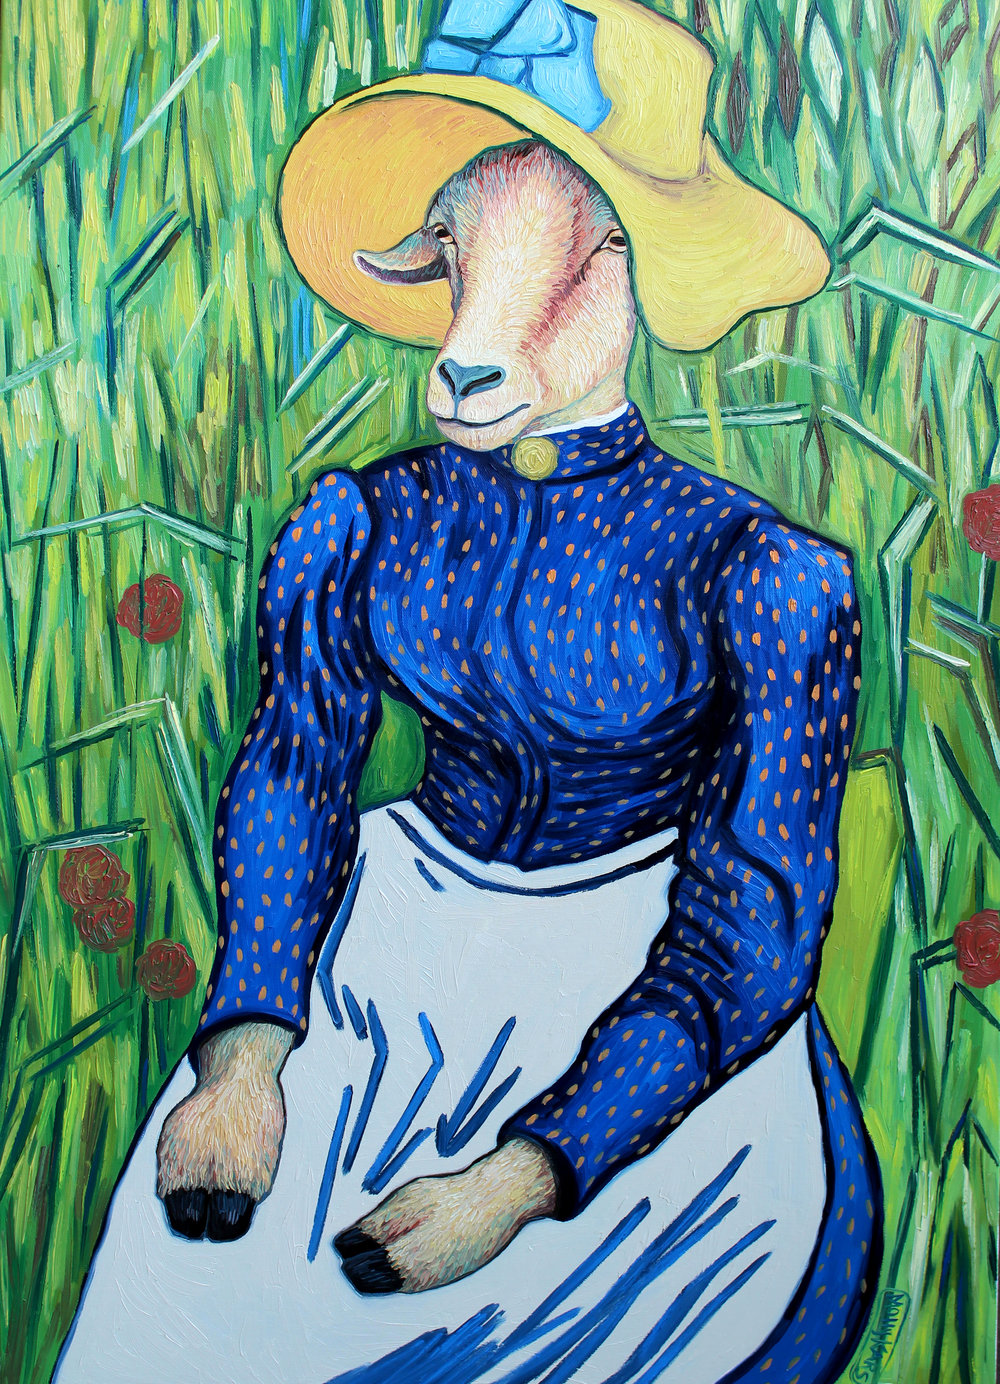 Young Peasant Goat with Straw Hat • 36 x 24 • oil on canvas • $2,200